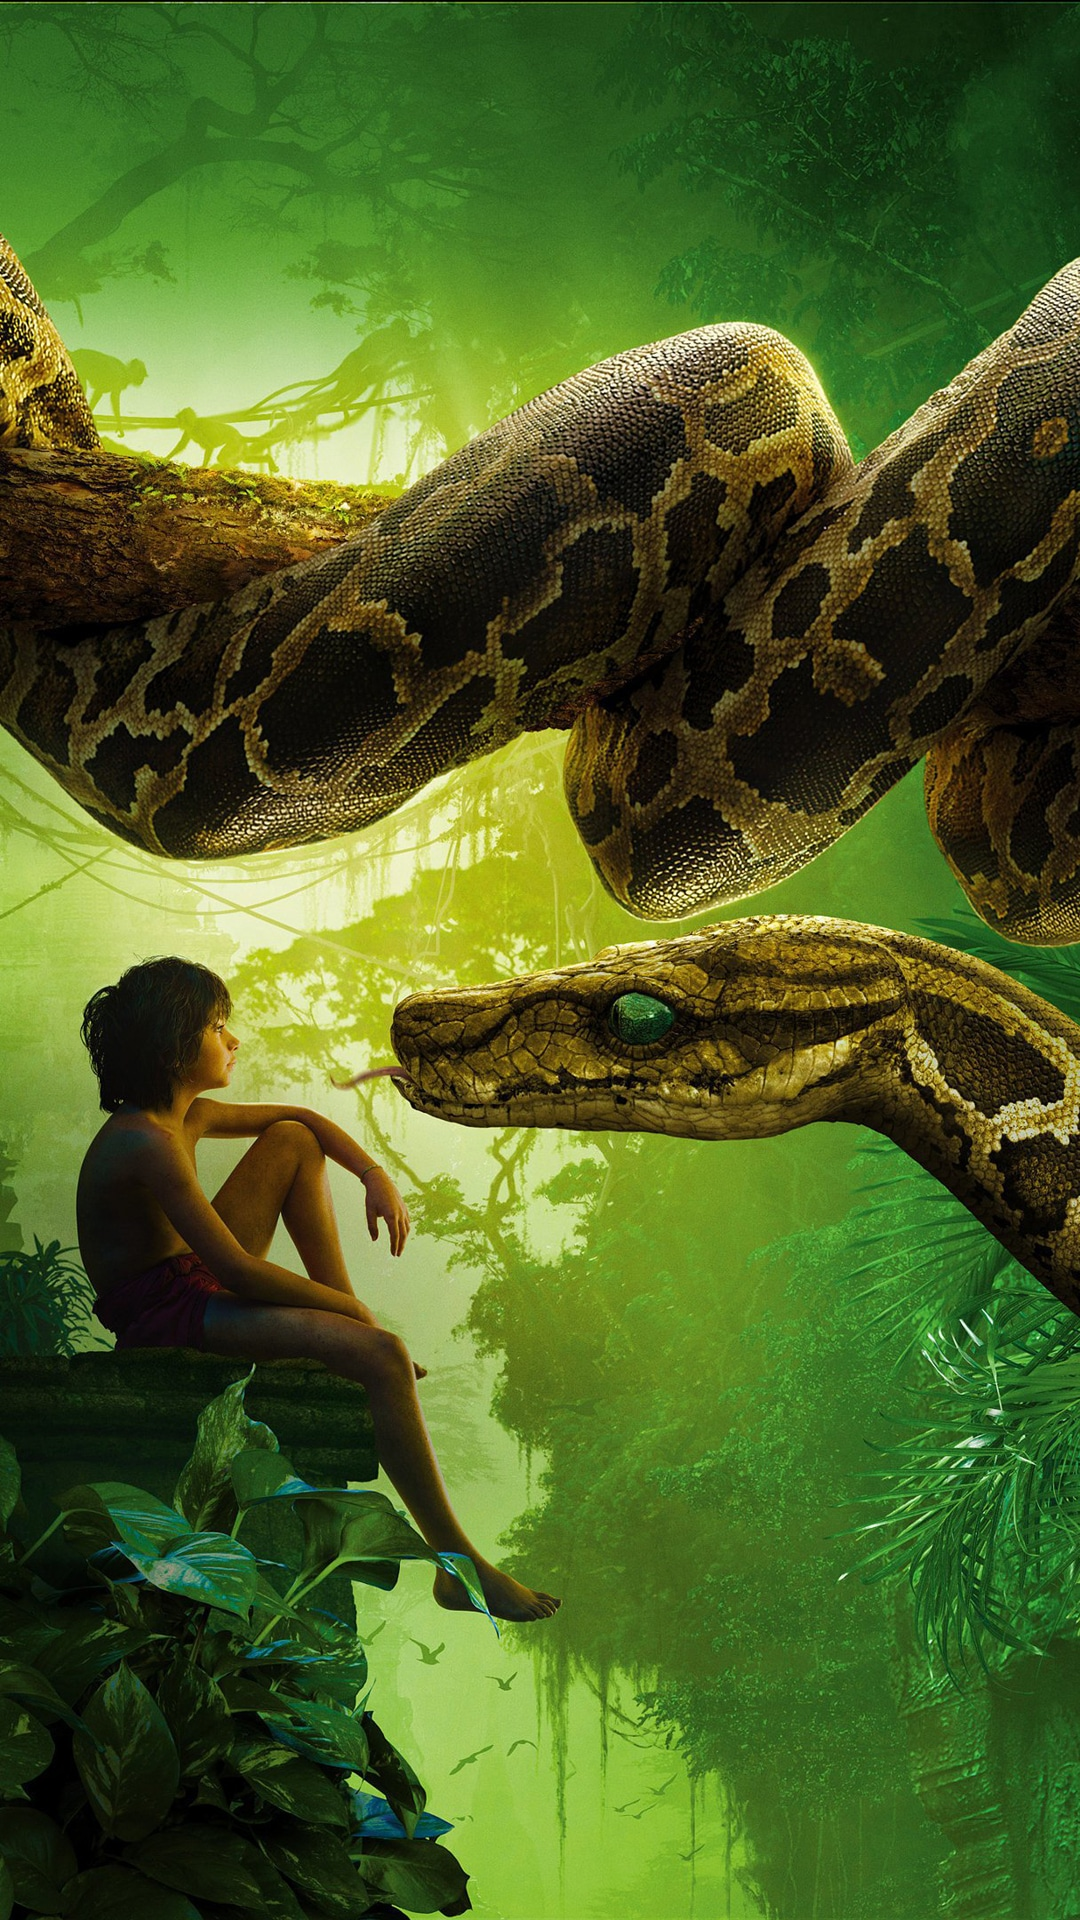 Iphone Book Wallpaper The Jungle Book 2016 Movie Wallpapers For Iphone Apple Lives